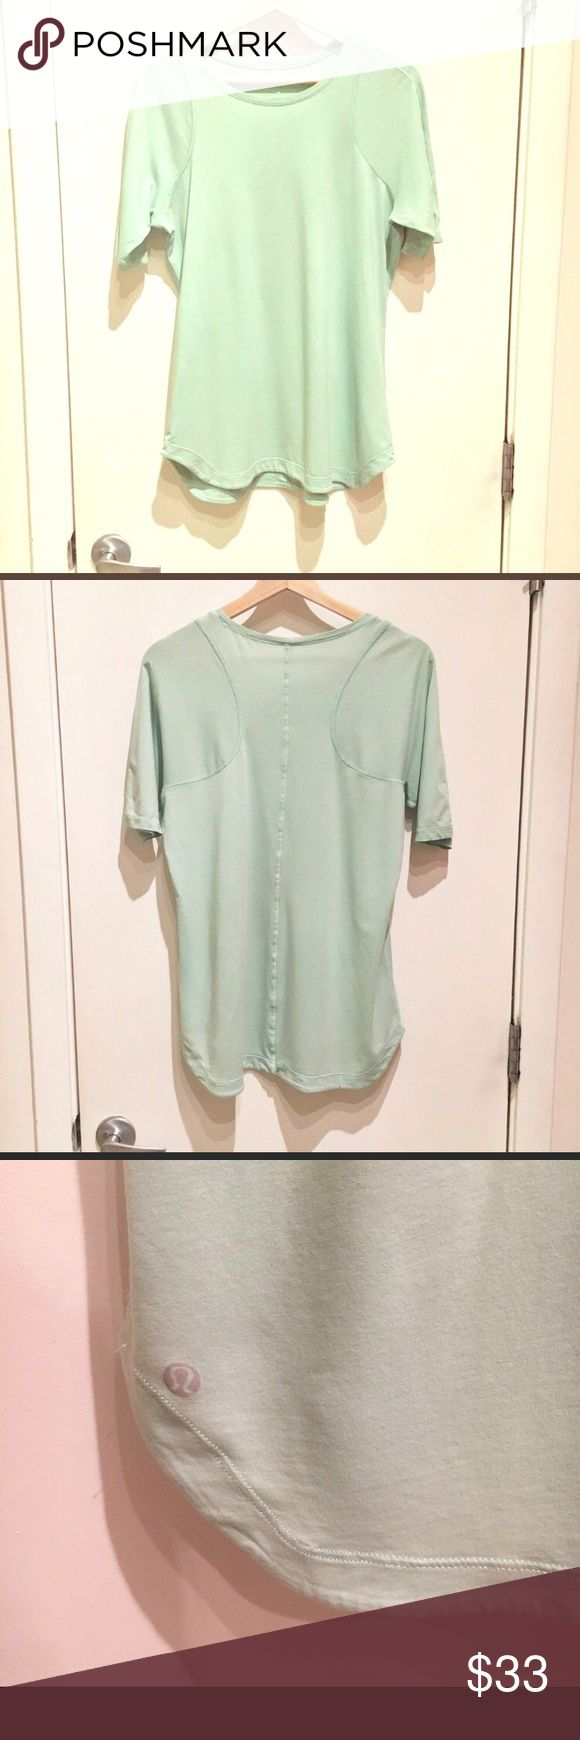 🍋 lululemon Baseball Henley tee mint green 10 12 EUC! Washed in dreft and line dried. Size 12 but fits more like a 10 lululemon athletica Tops Tees - Short Sleeve